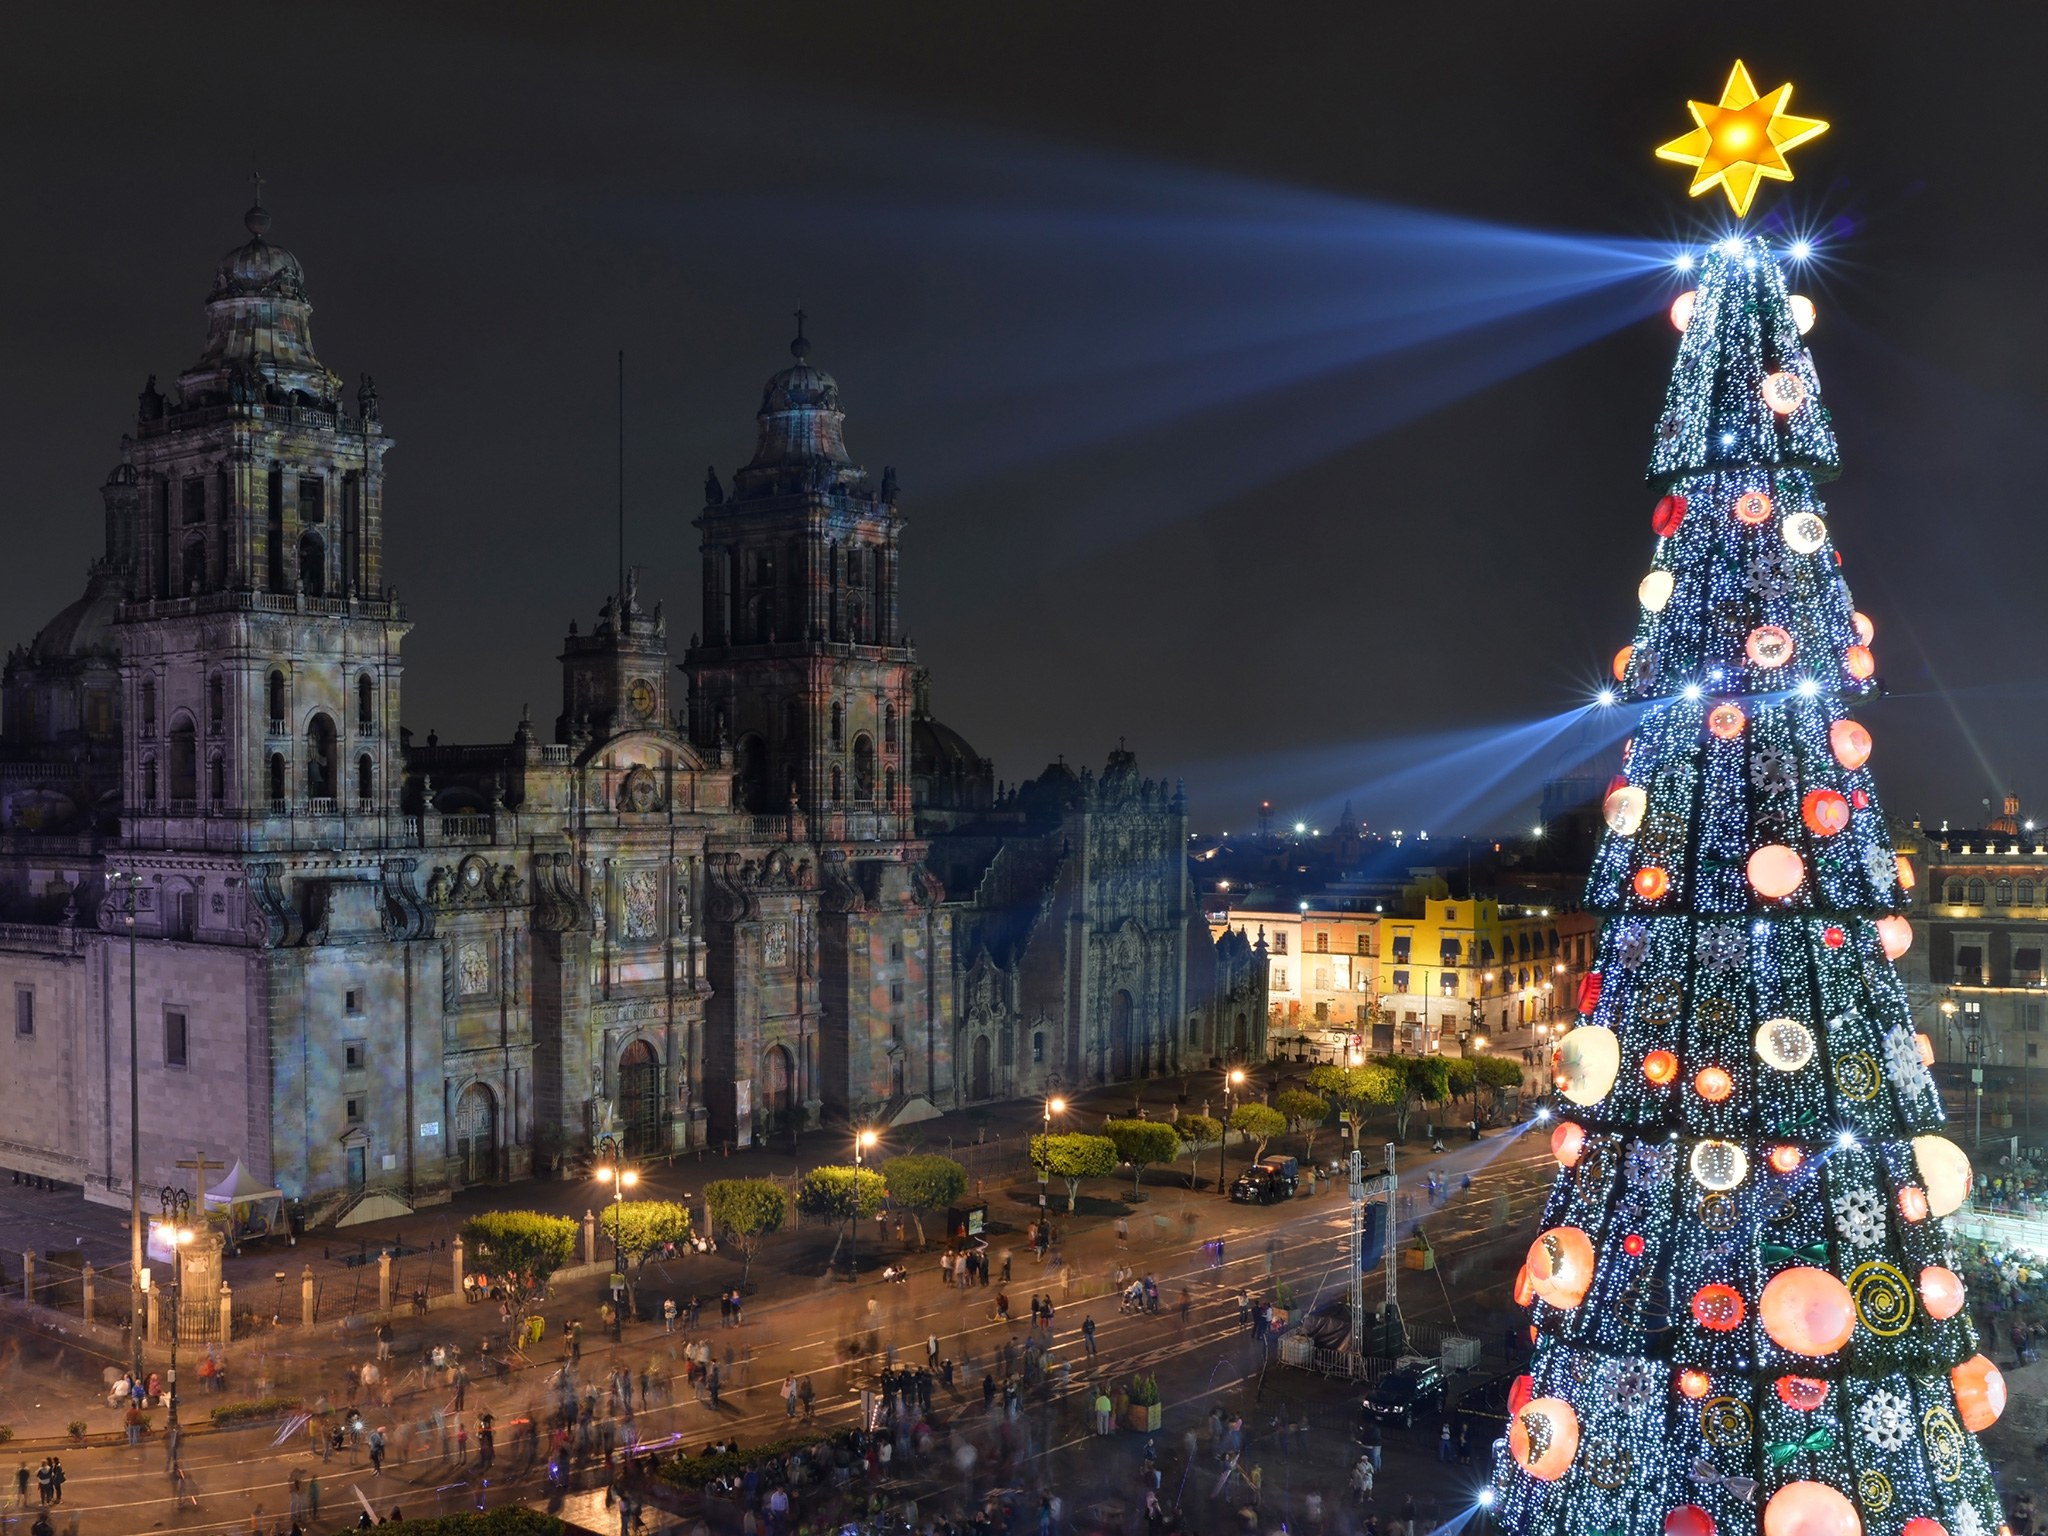 mexico-city-christmas-tree-gettyimages-501970888